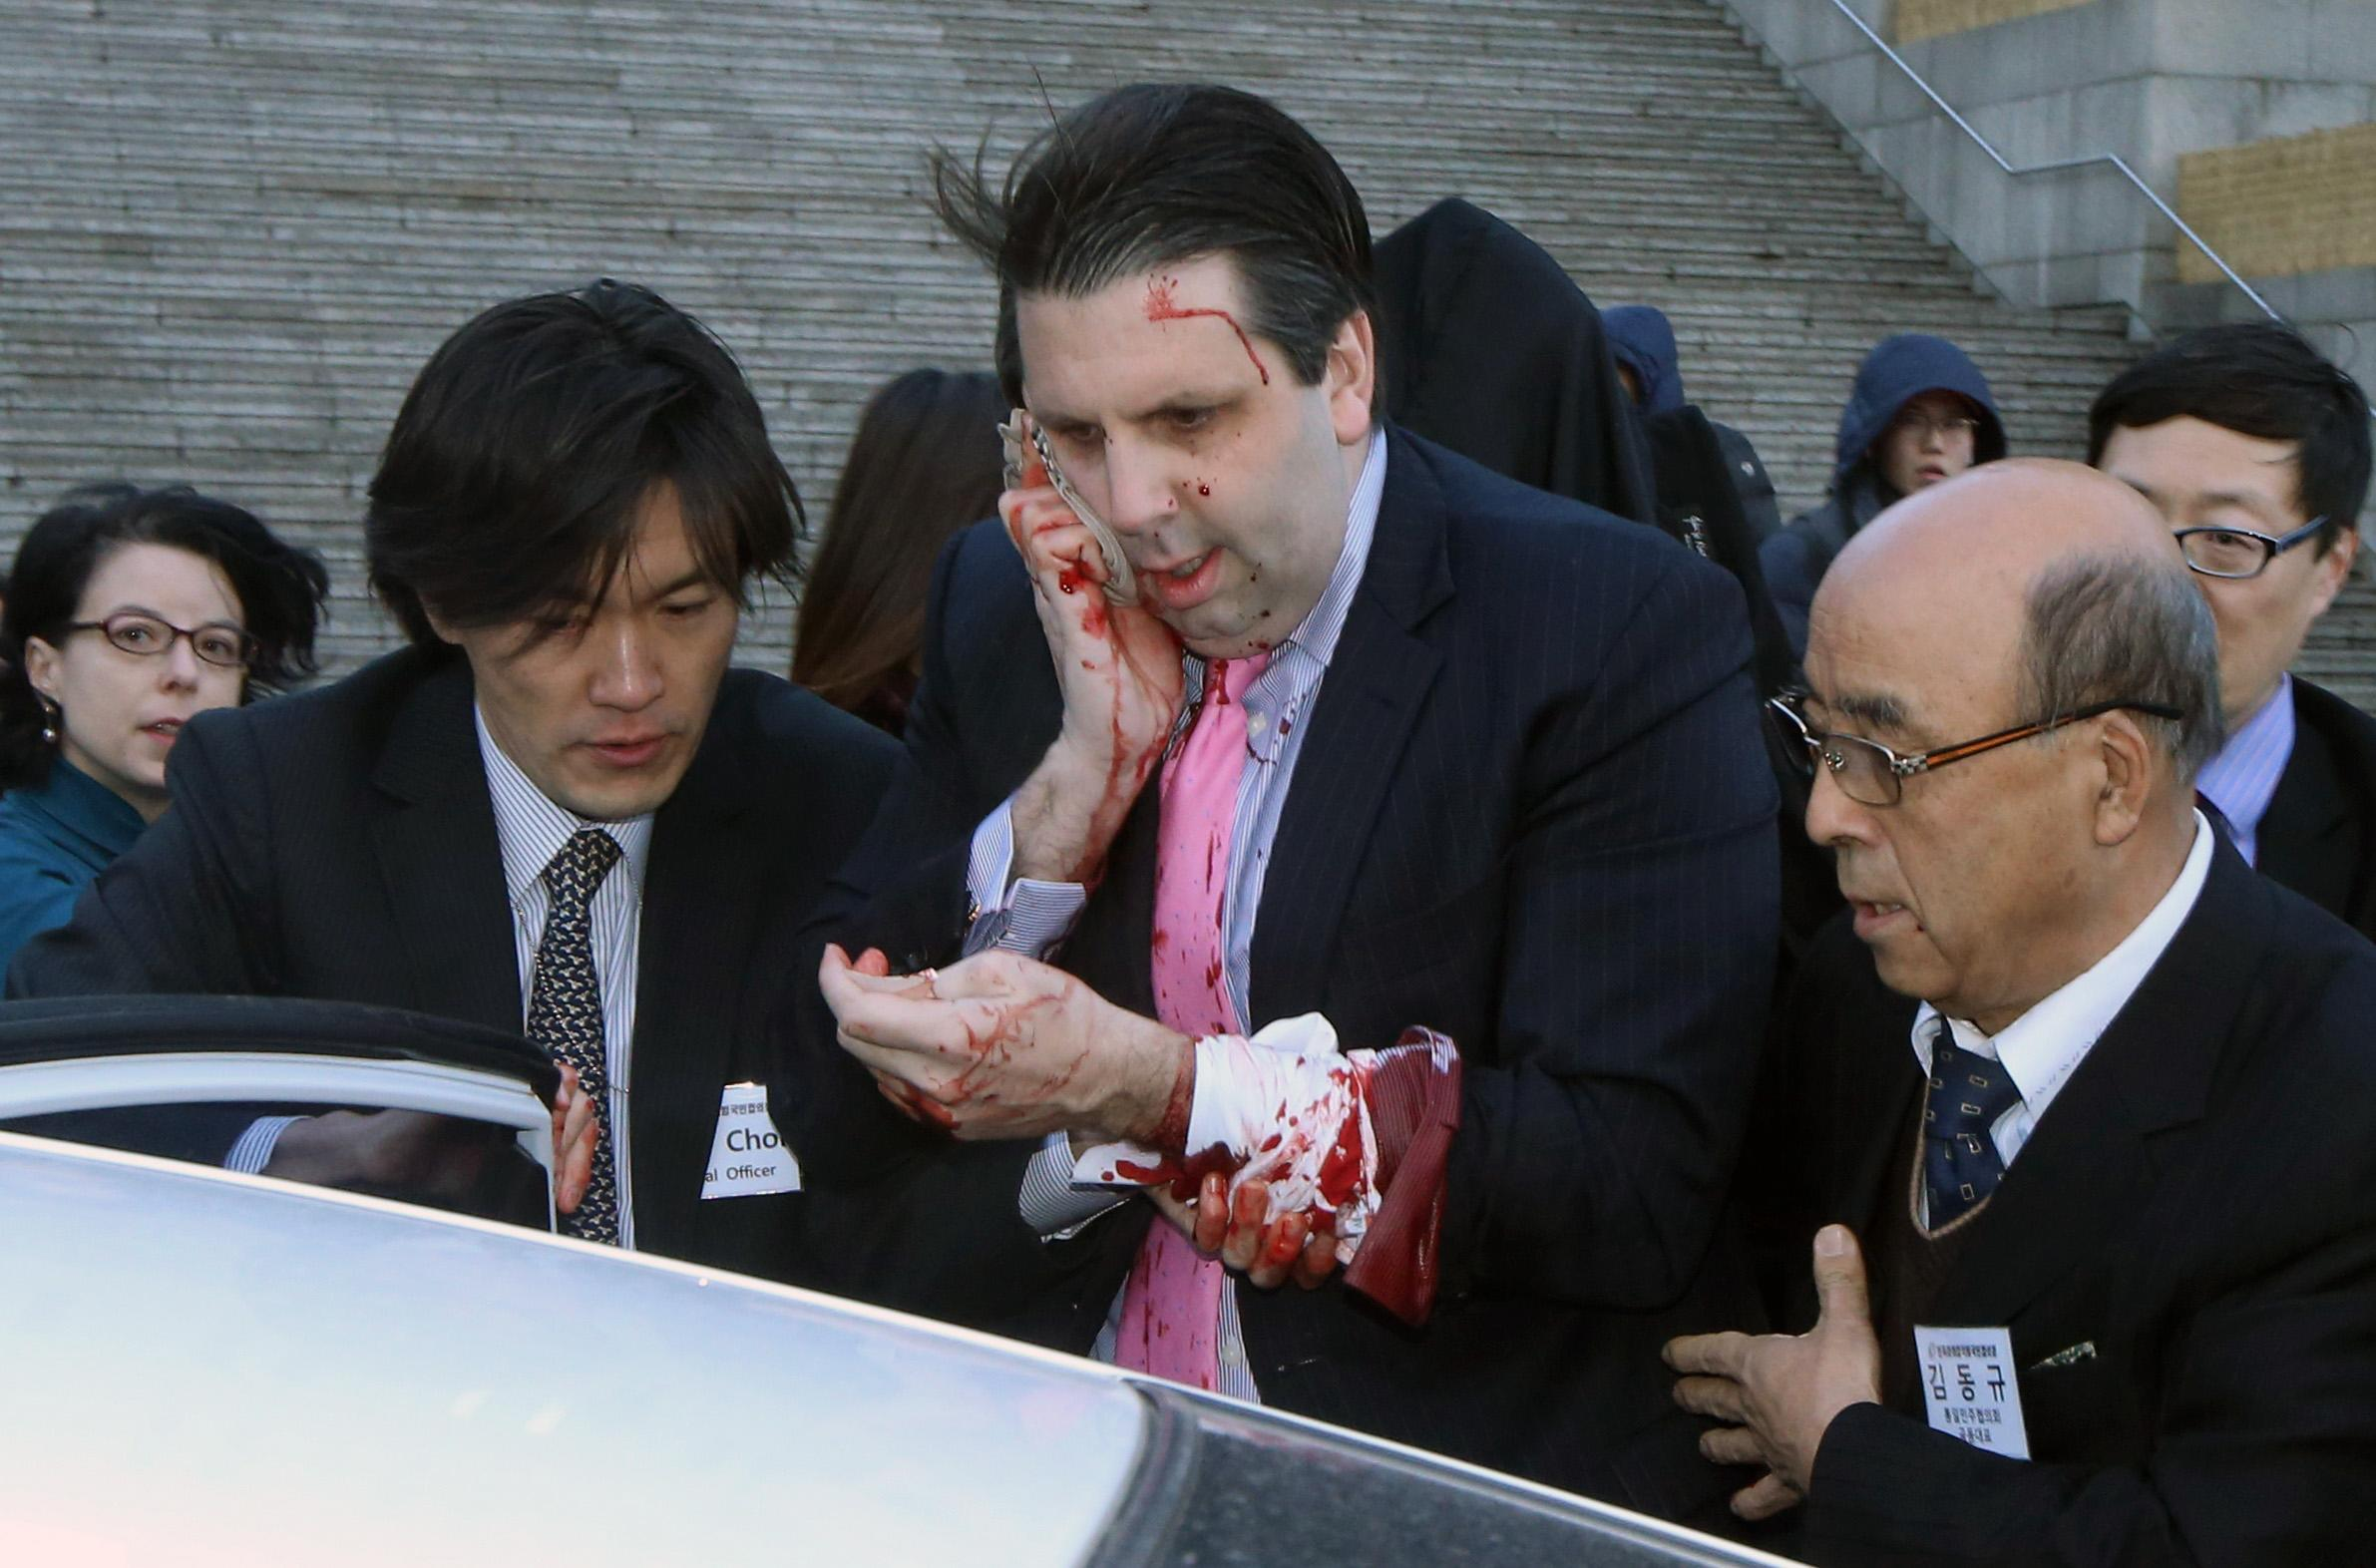 SKorean media say US ambassador attacked and hurt